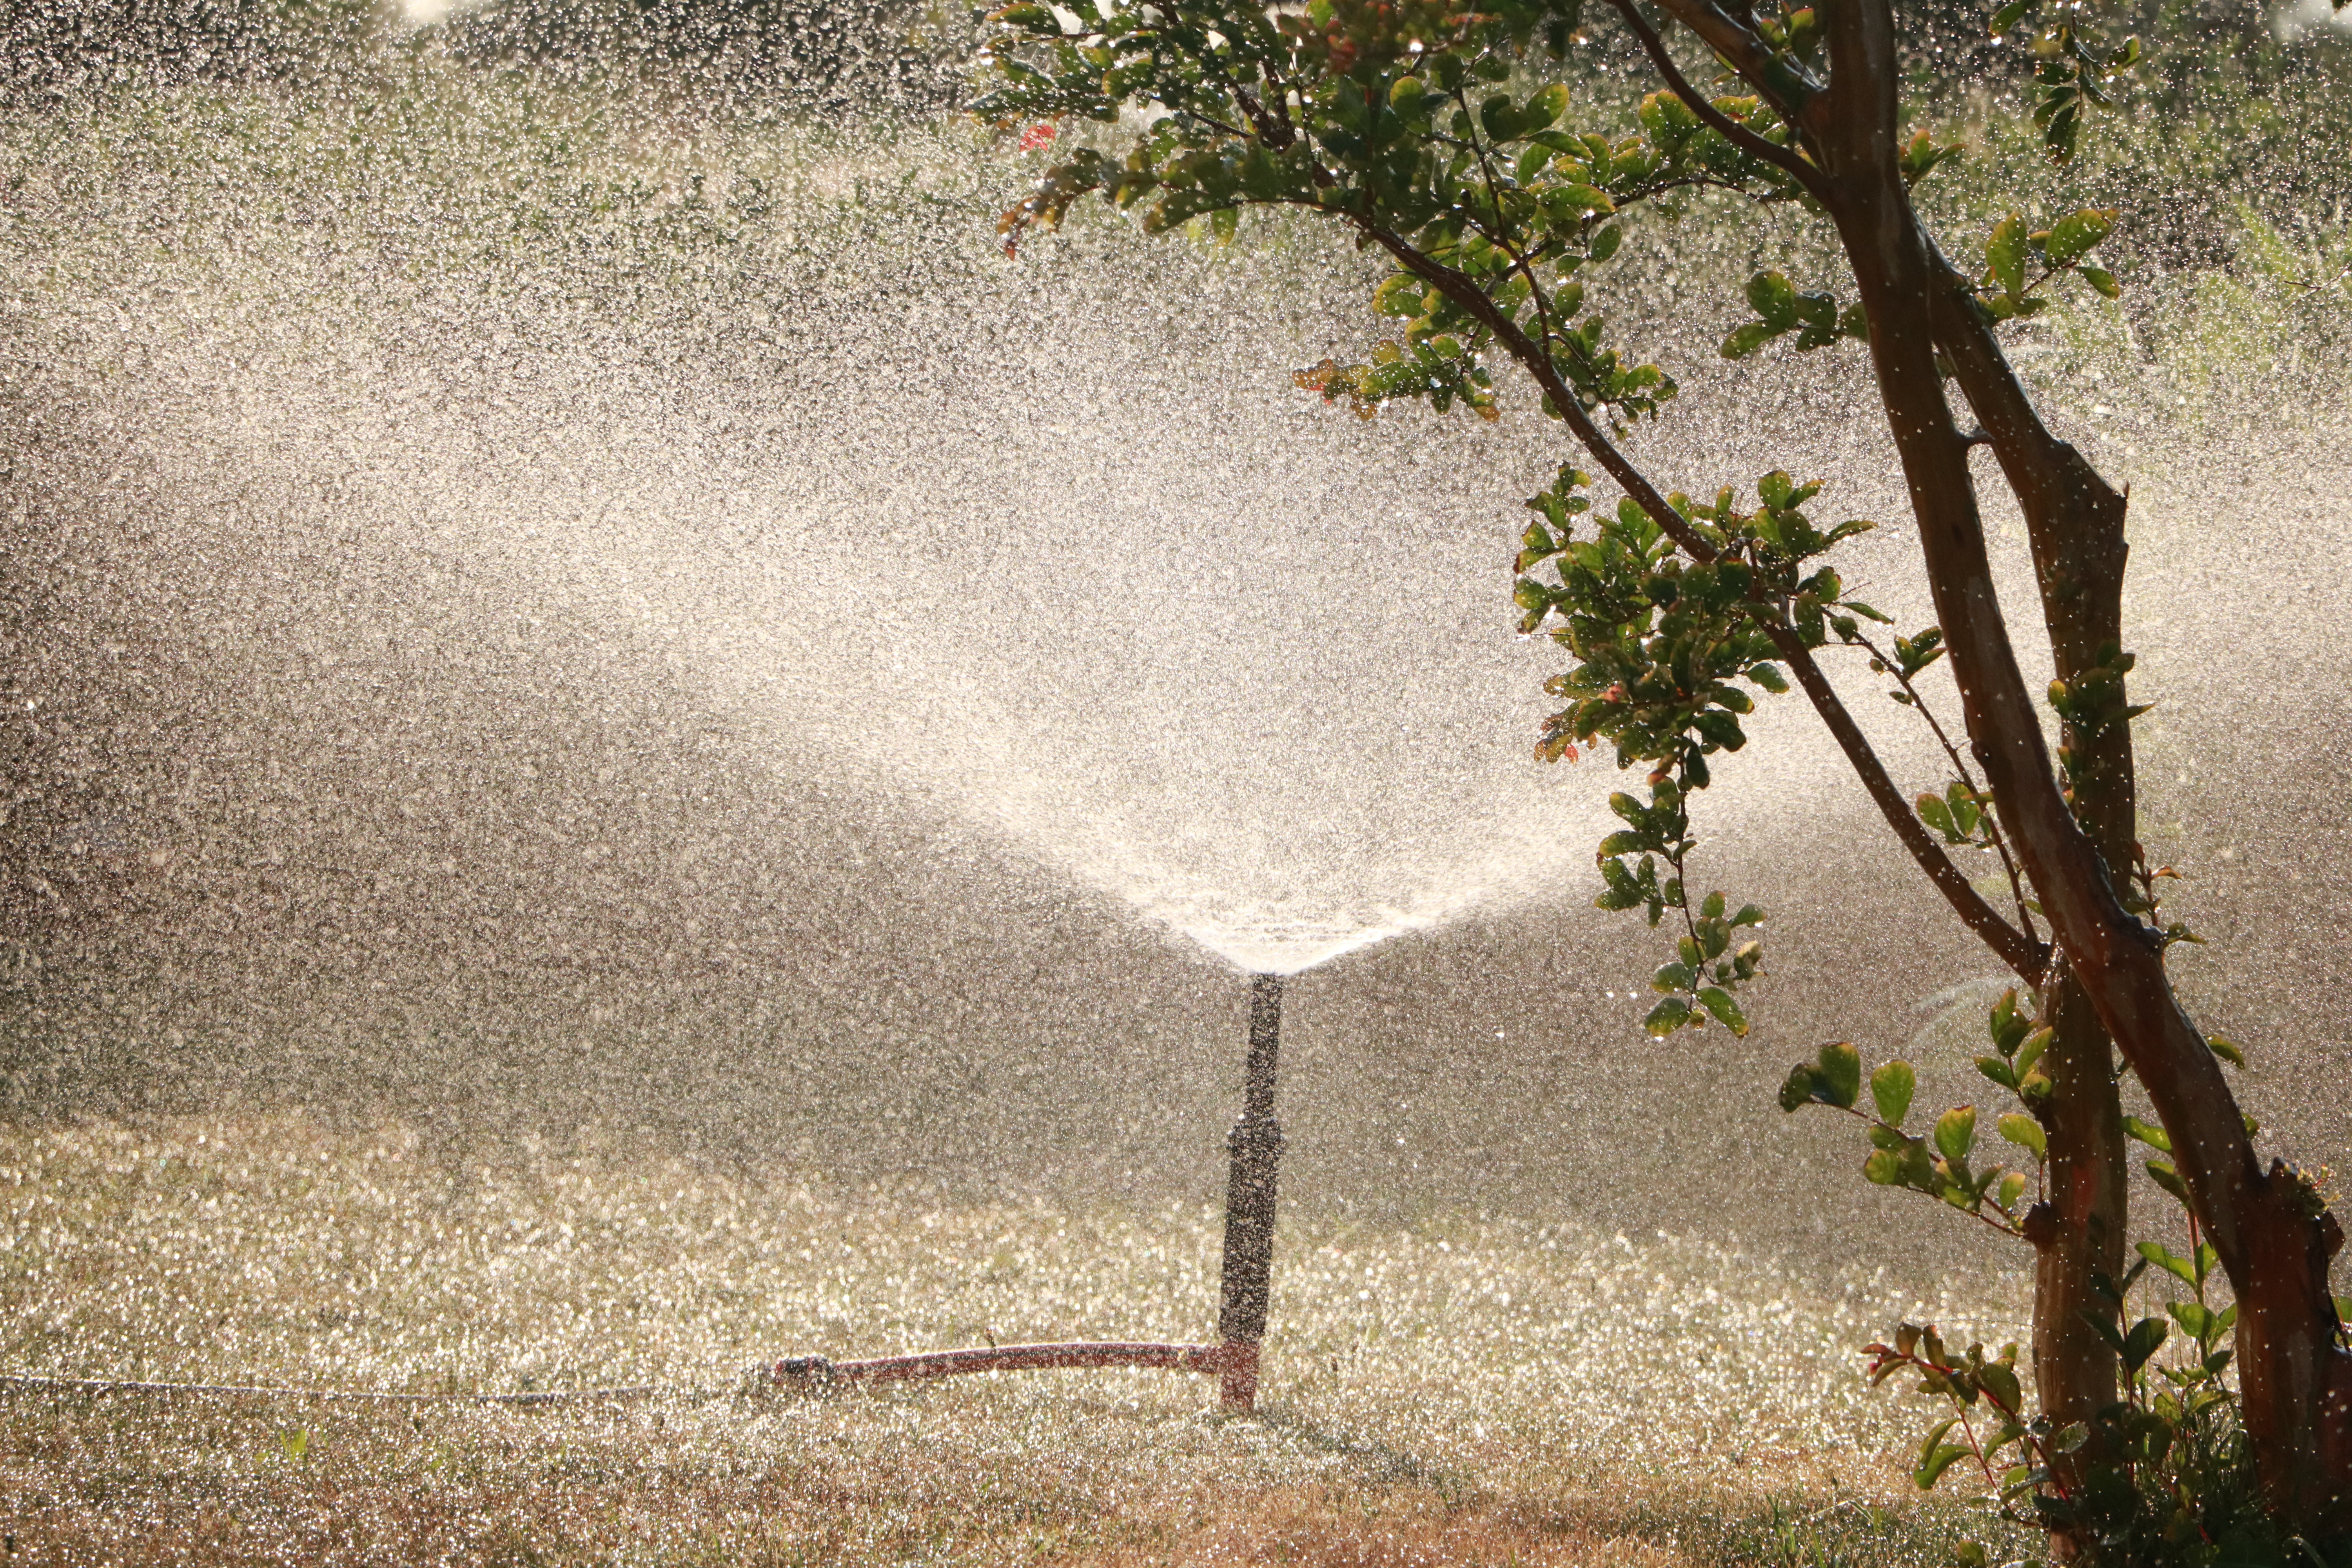 garden sprinkler beside tree